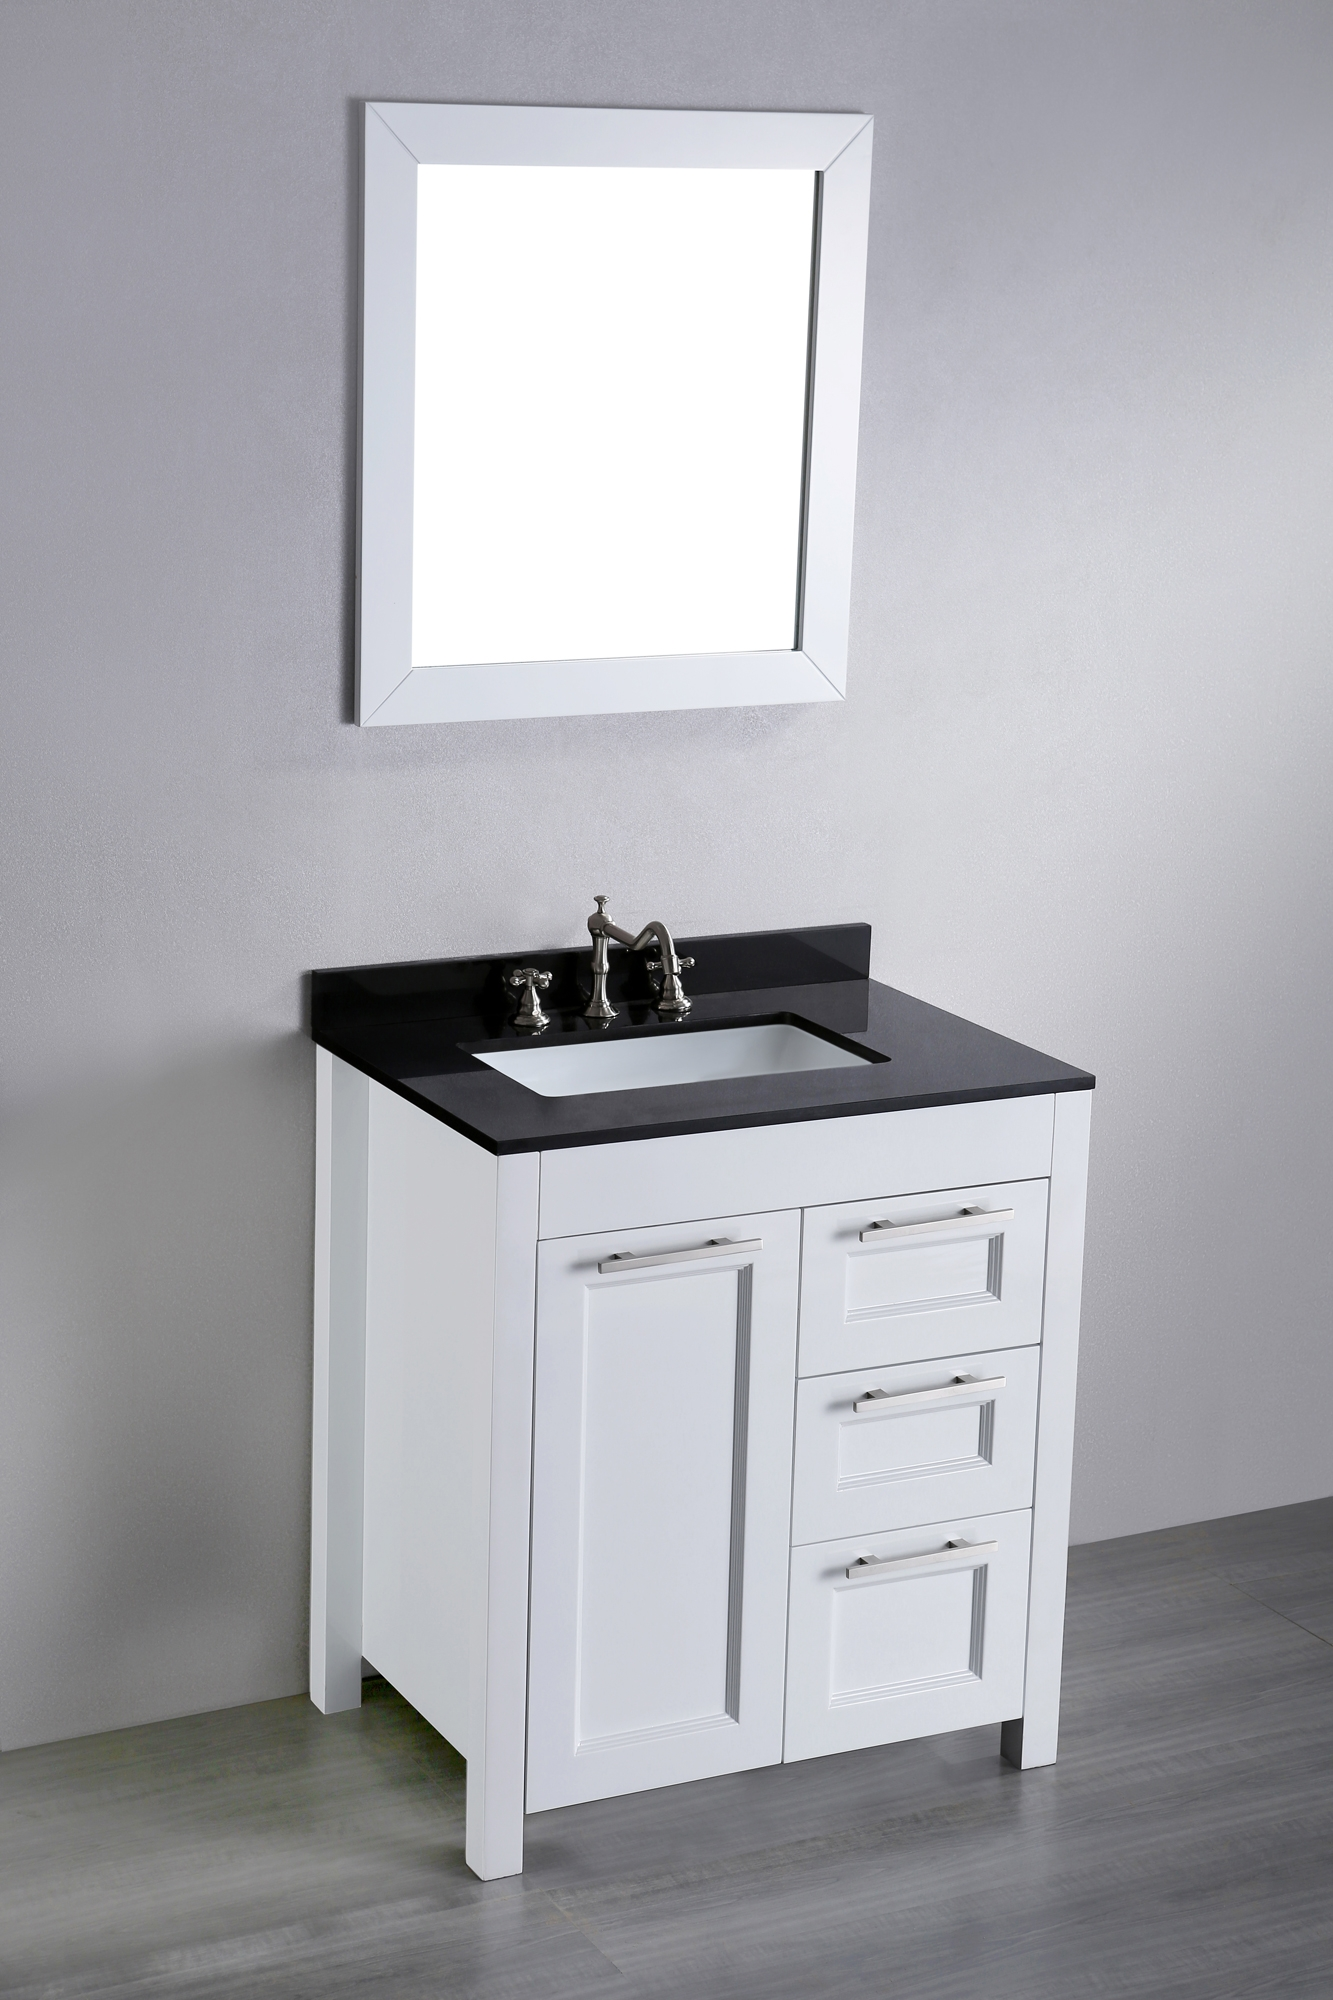 30 Inch White Vanity With Drawers | Bathroom Decoration